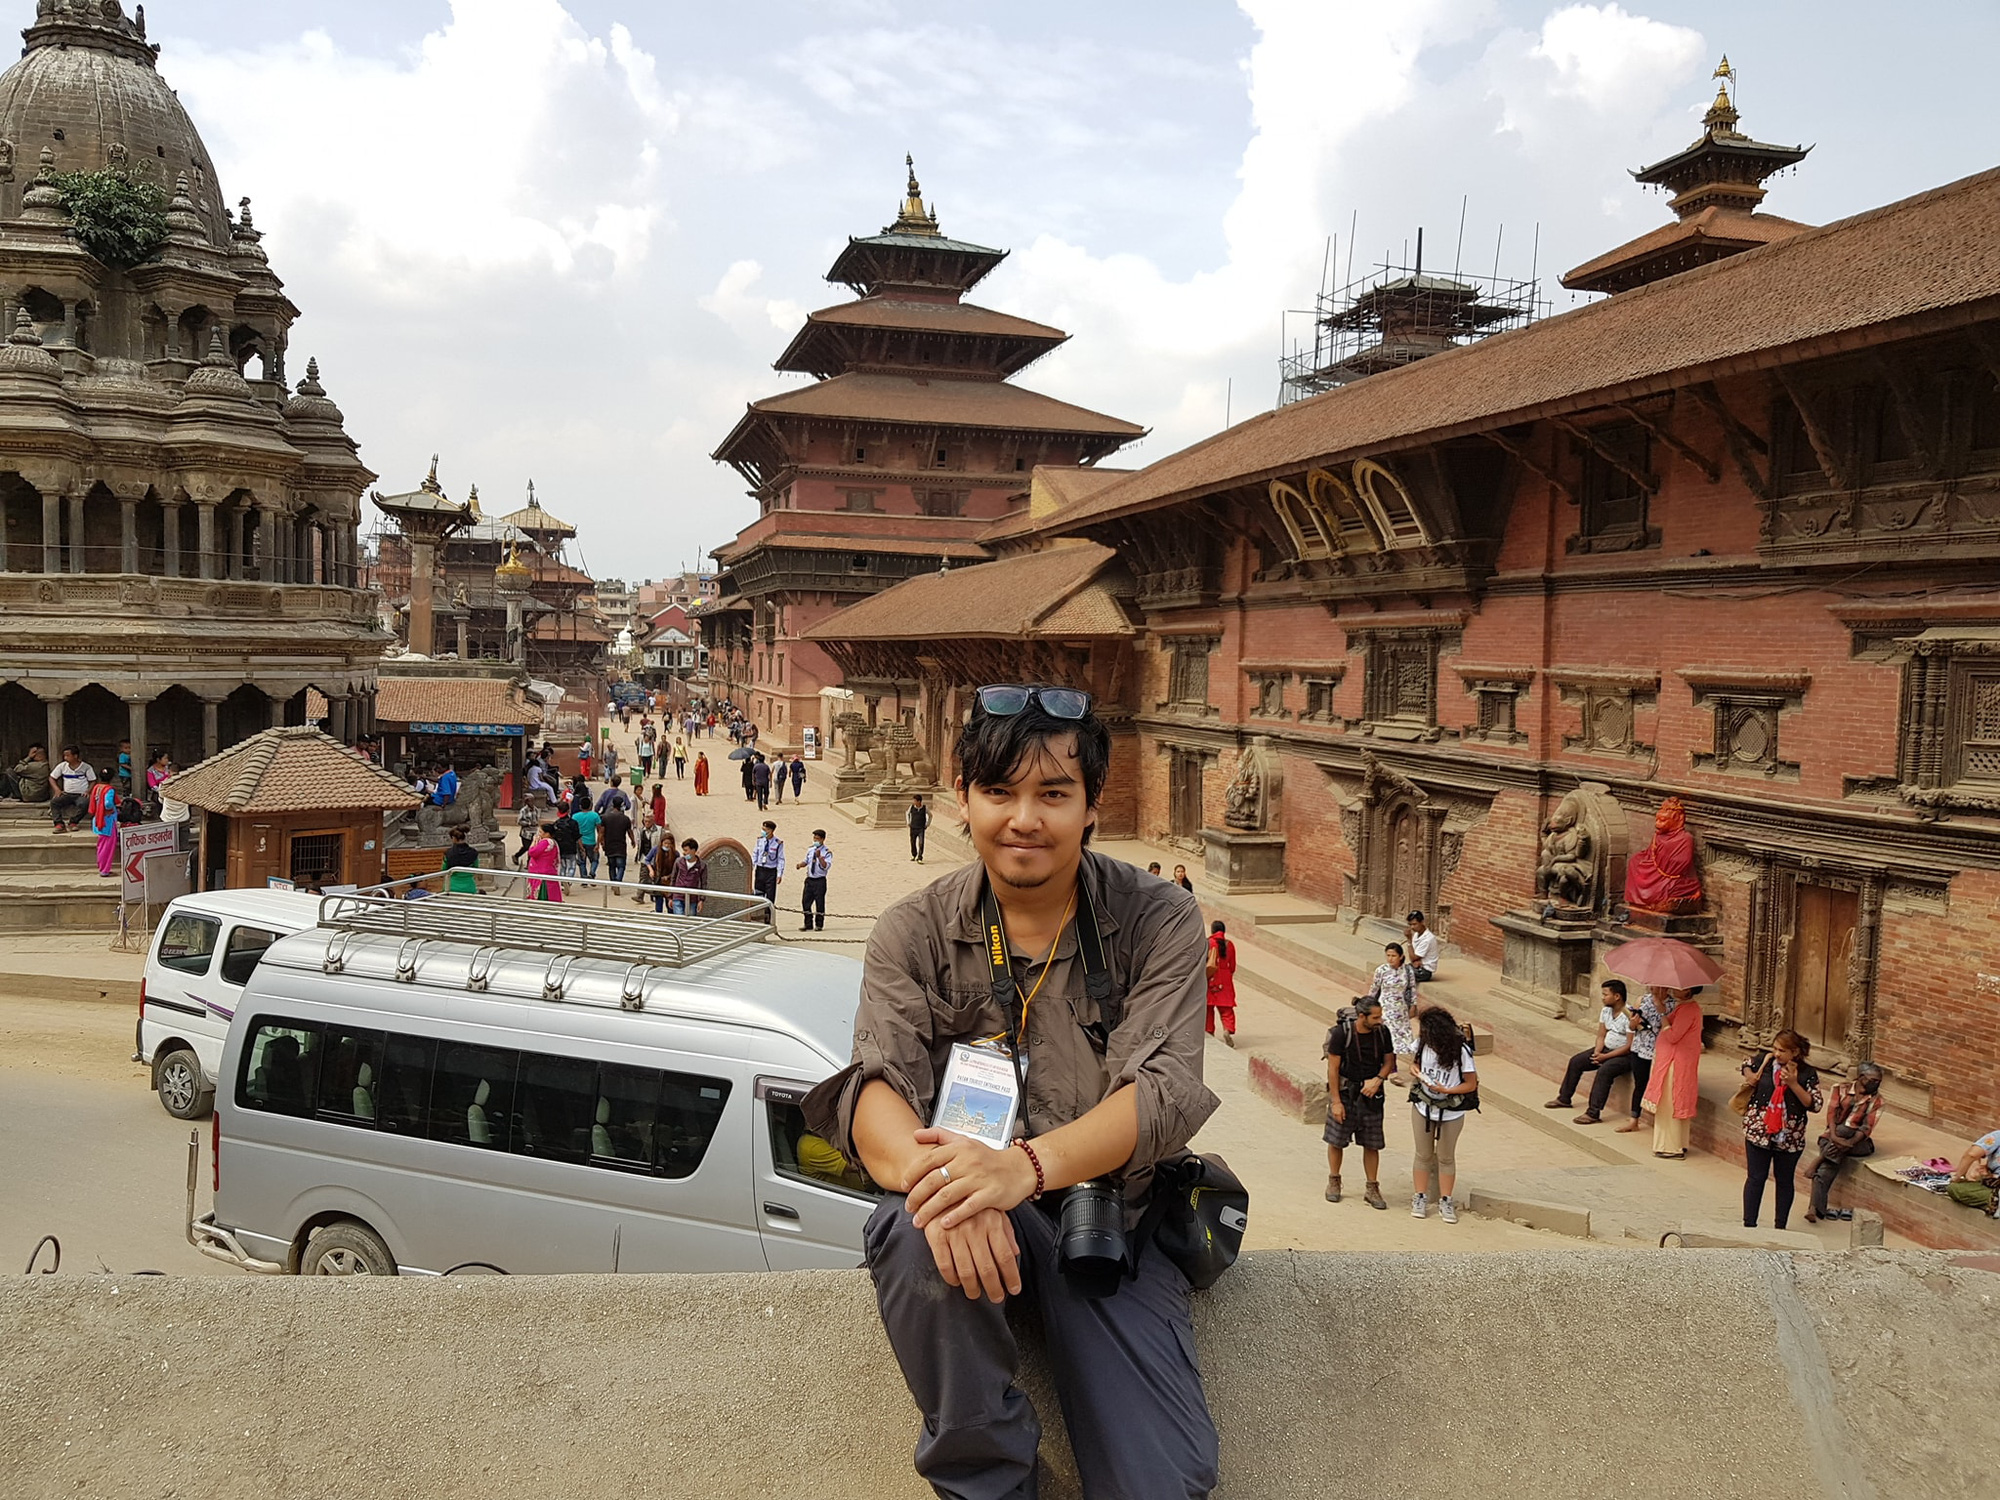 Vietnamese globetrotter Tran Dang Dang Khoa poses for a photo against the backdrop of pagodas at a tourist attraction in Kathmandu, Nepal in a photo posted to his verified Facebook account.